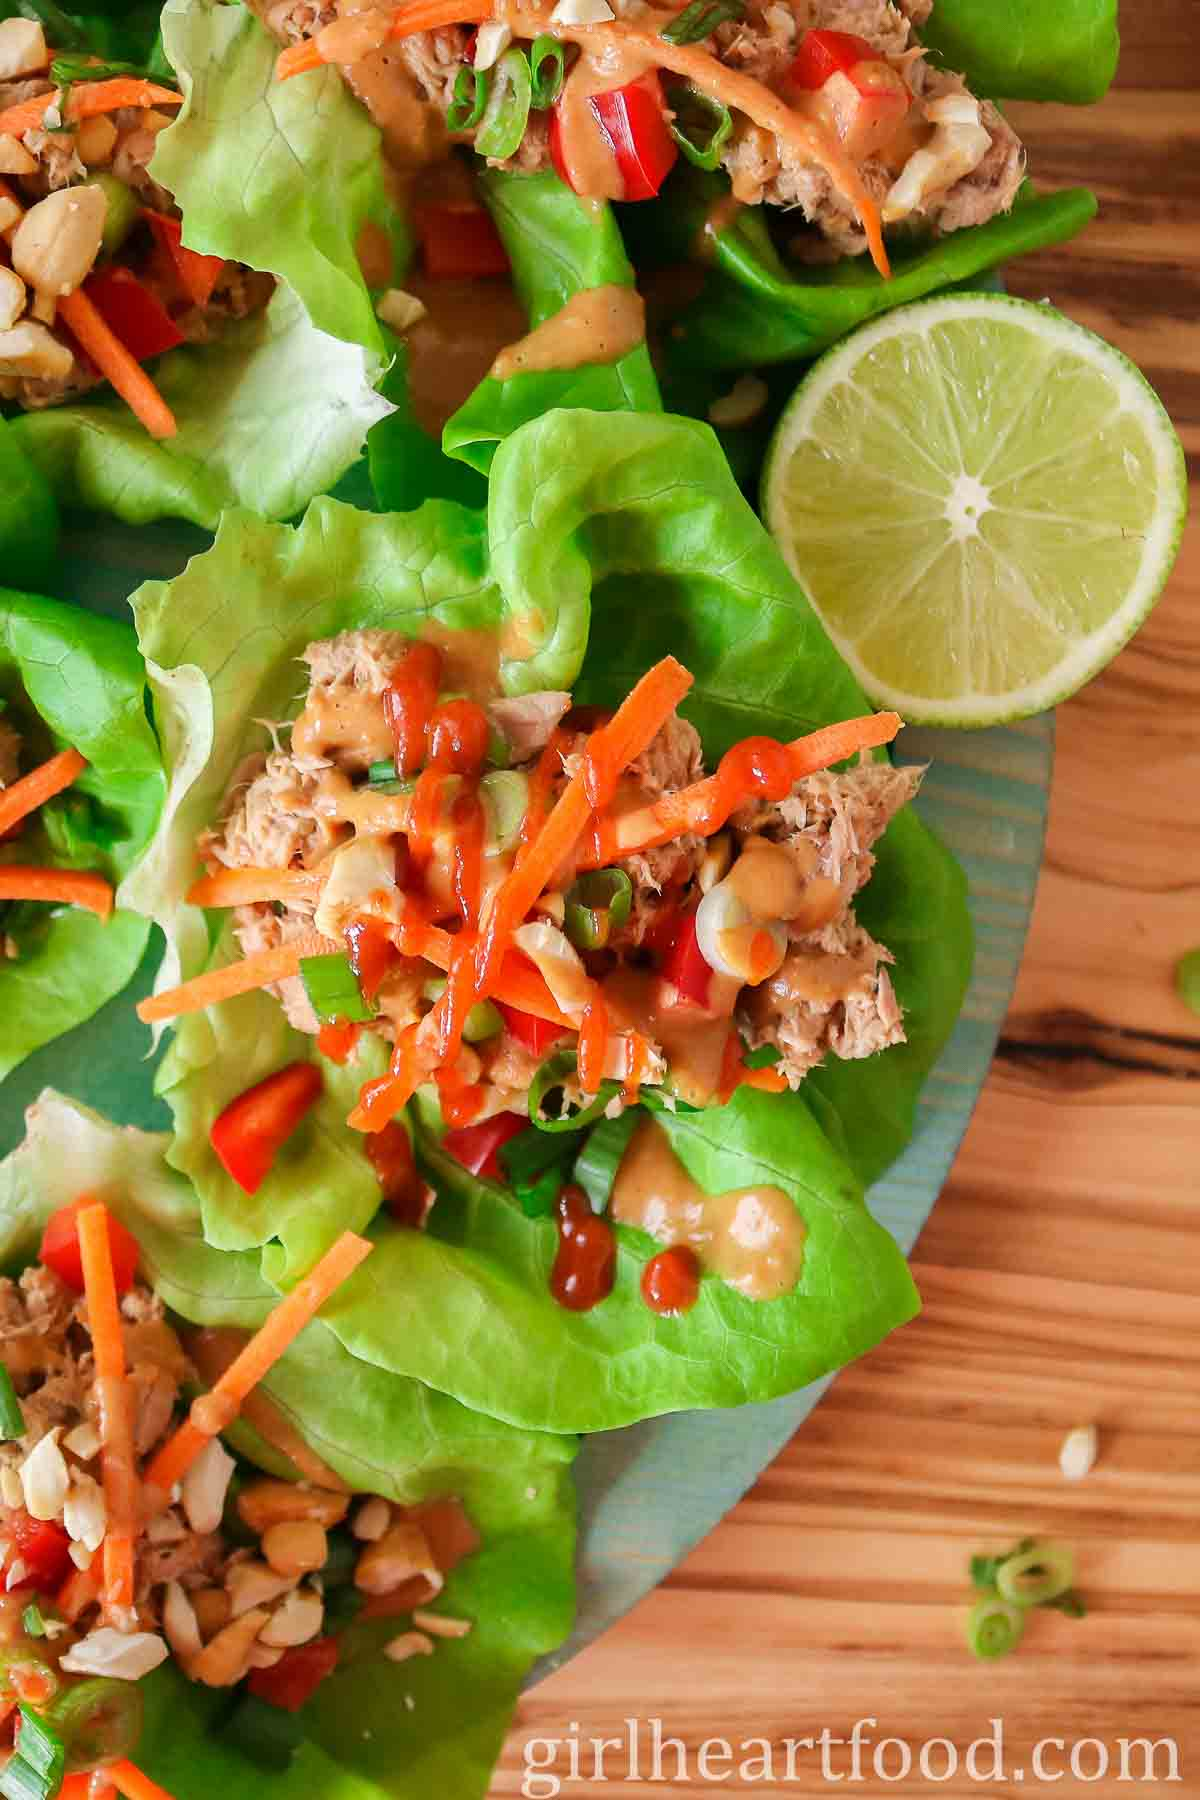 Tuna lettuce wraps with peanut sauce and hot sauce next to half a lime.